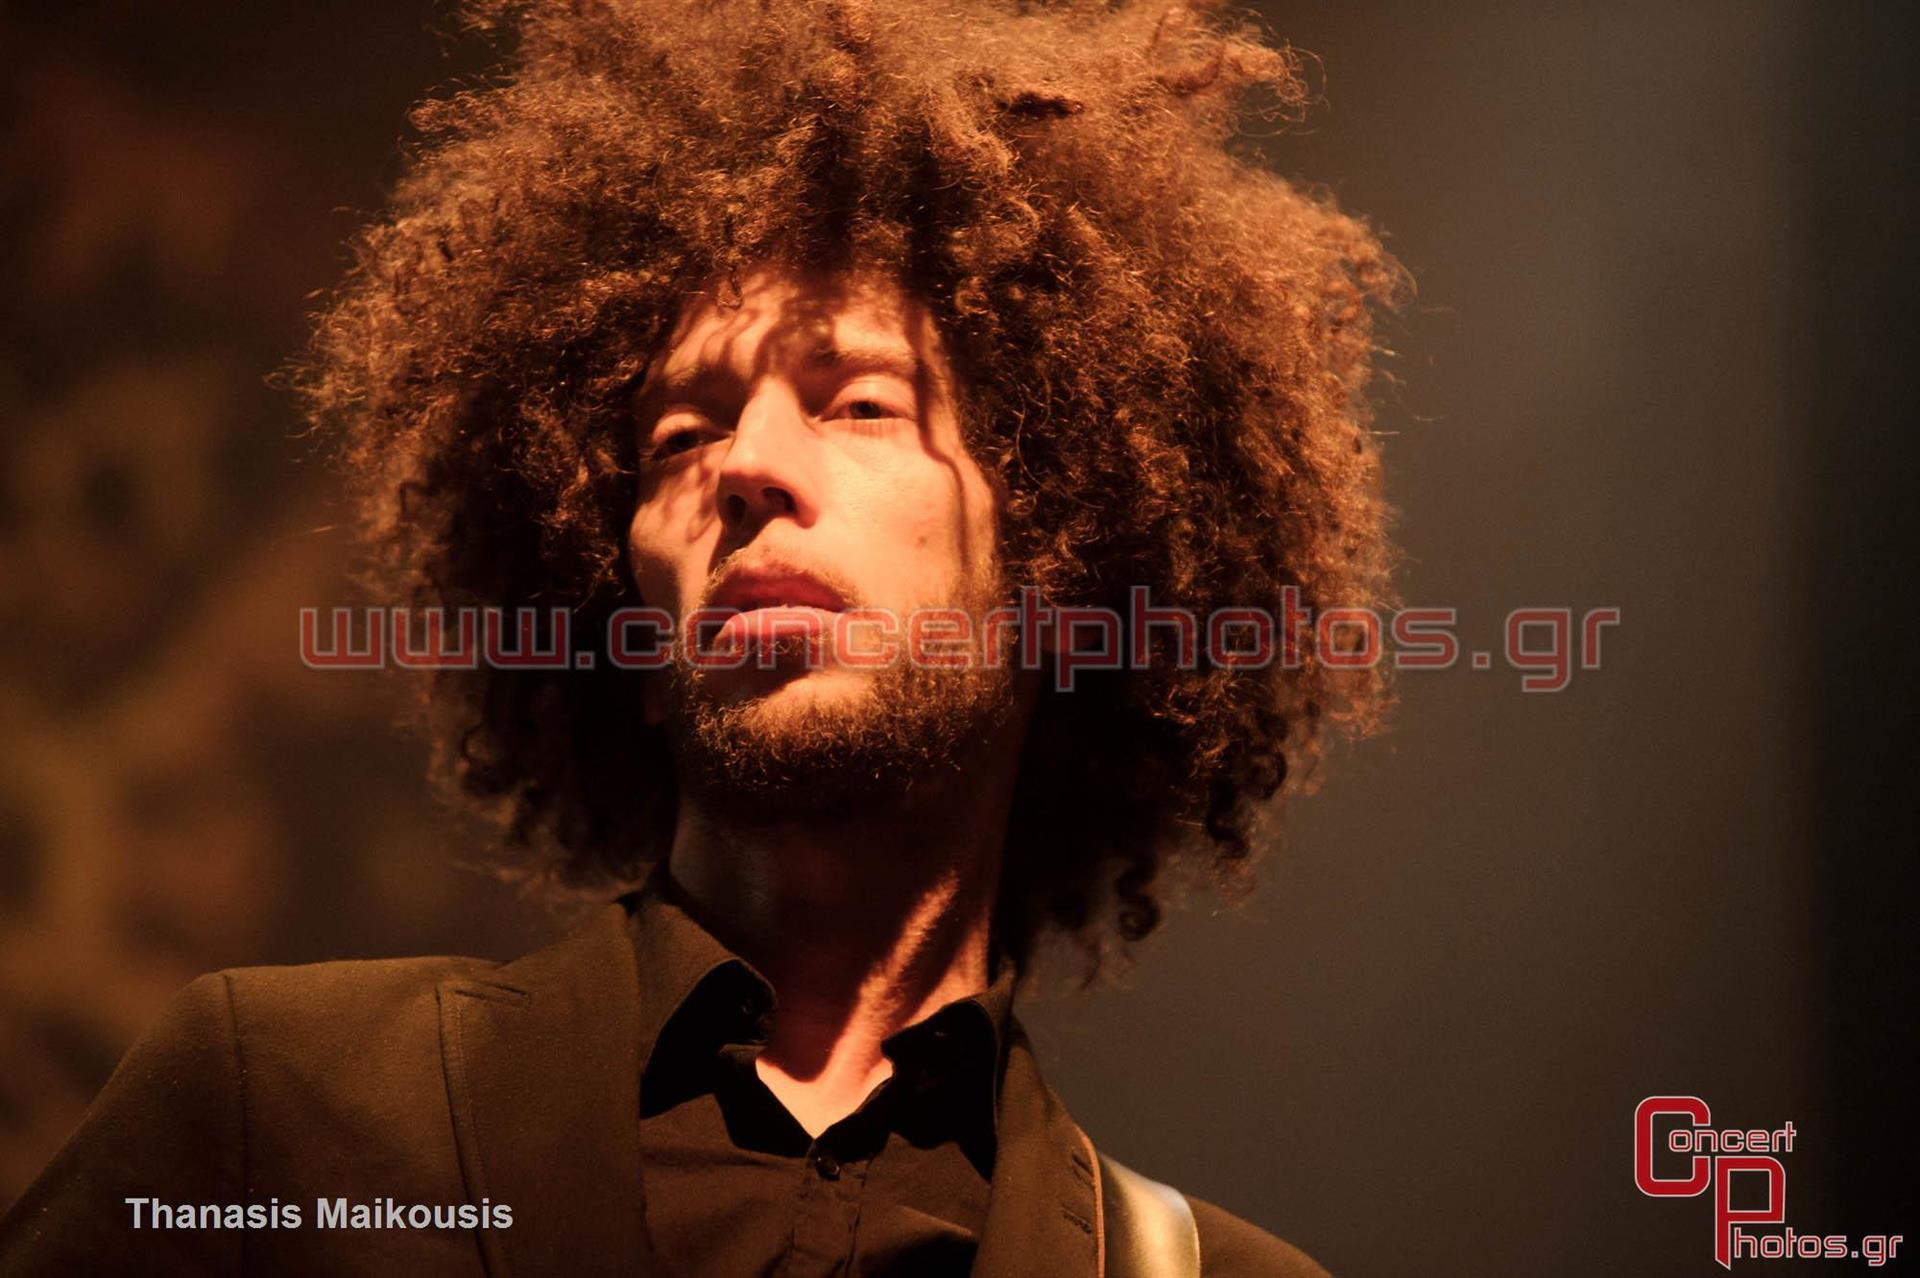 Wax Tailor - photographer: Thanasis Maikousis - ConcertPhotos-7661